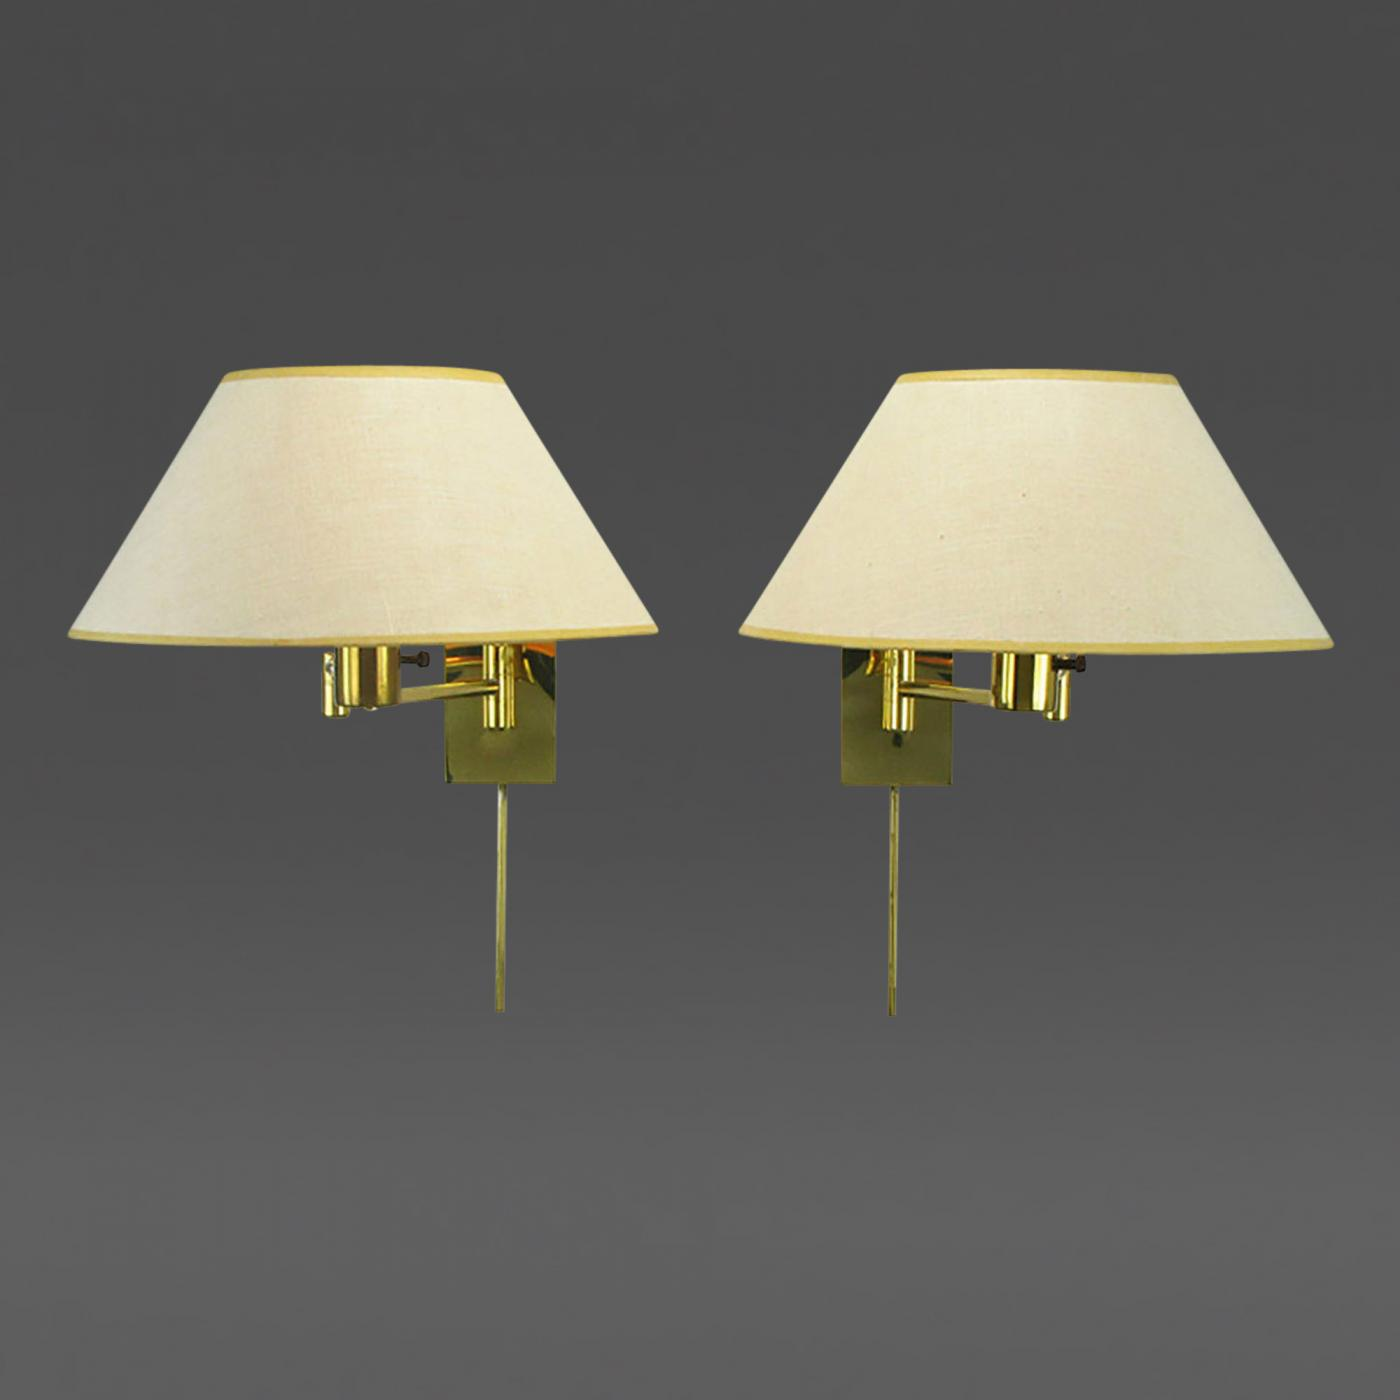 Dar lighting anvil anv0750s s1106 swing arm wall light in polished - Listings Furniture Lighting Wall Lights And Sconces